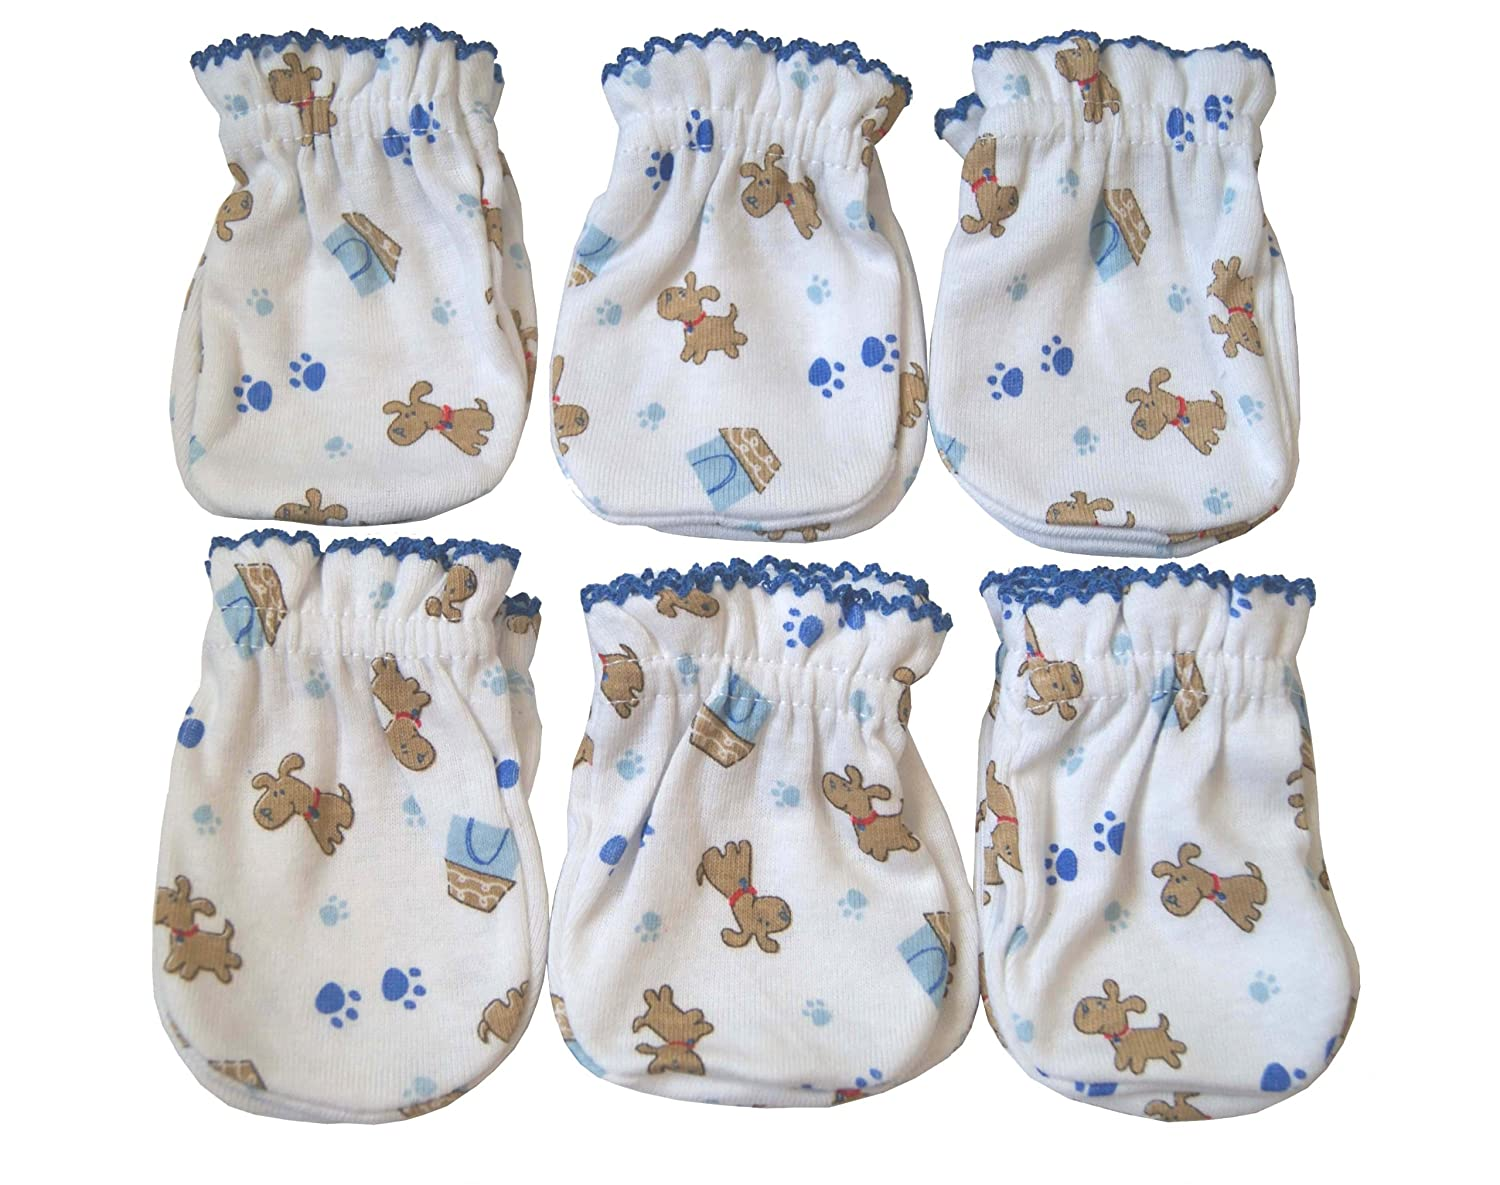 6 Pairs Cotton Newborn Baby/infant Boy No Scratch Mittens Gloves - Cute Little Dog Tamsmart